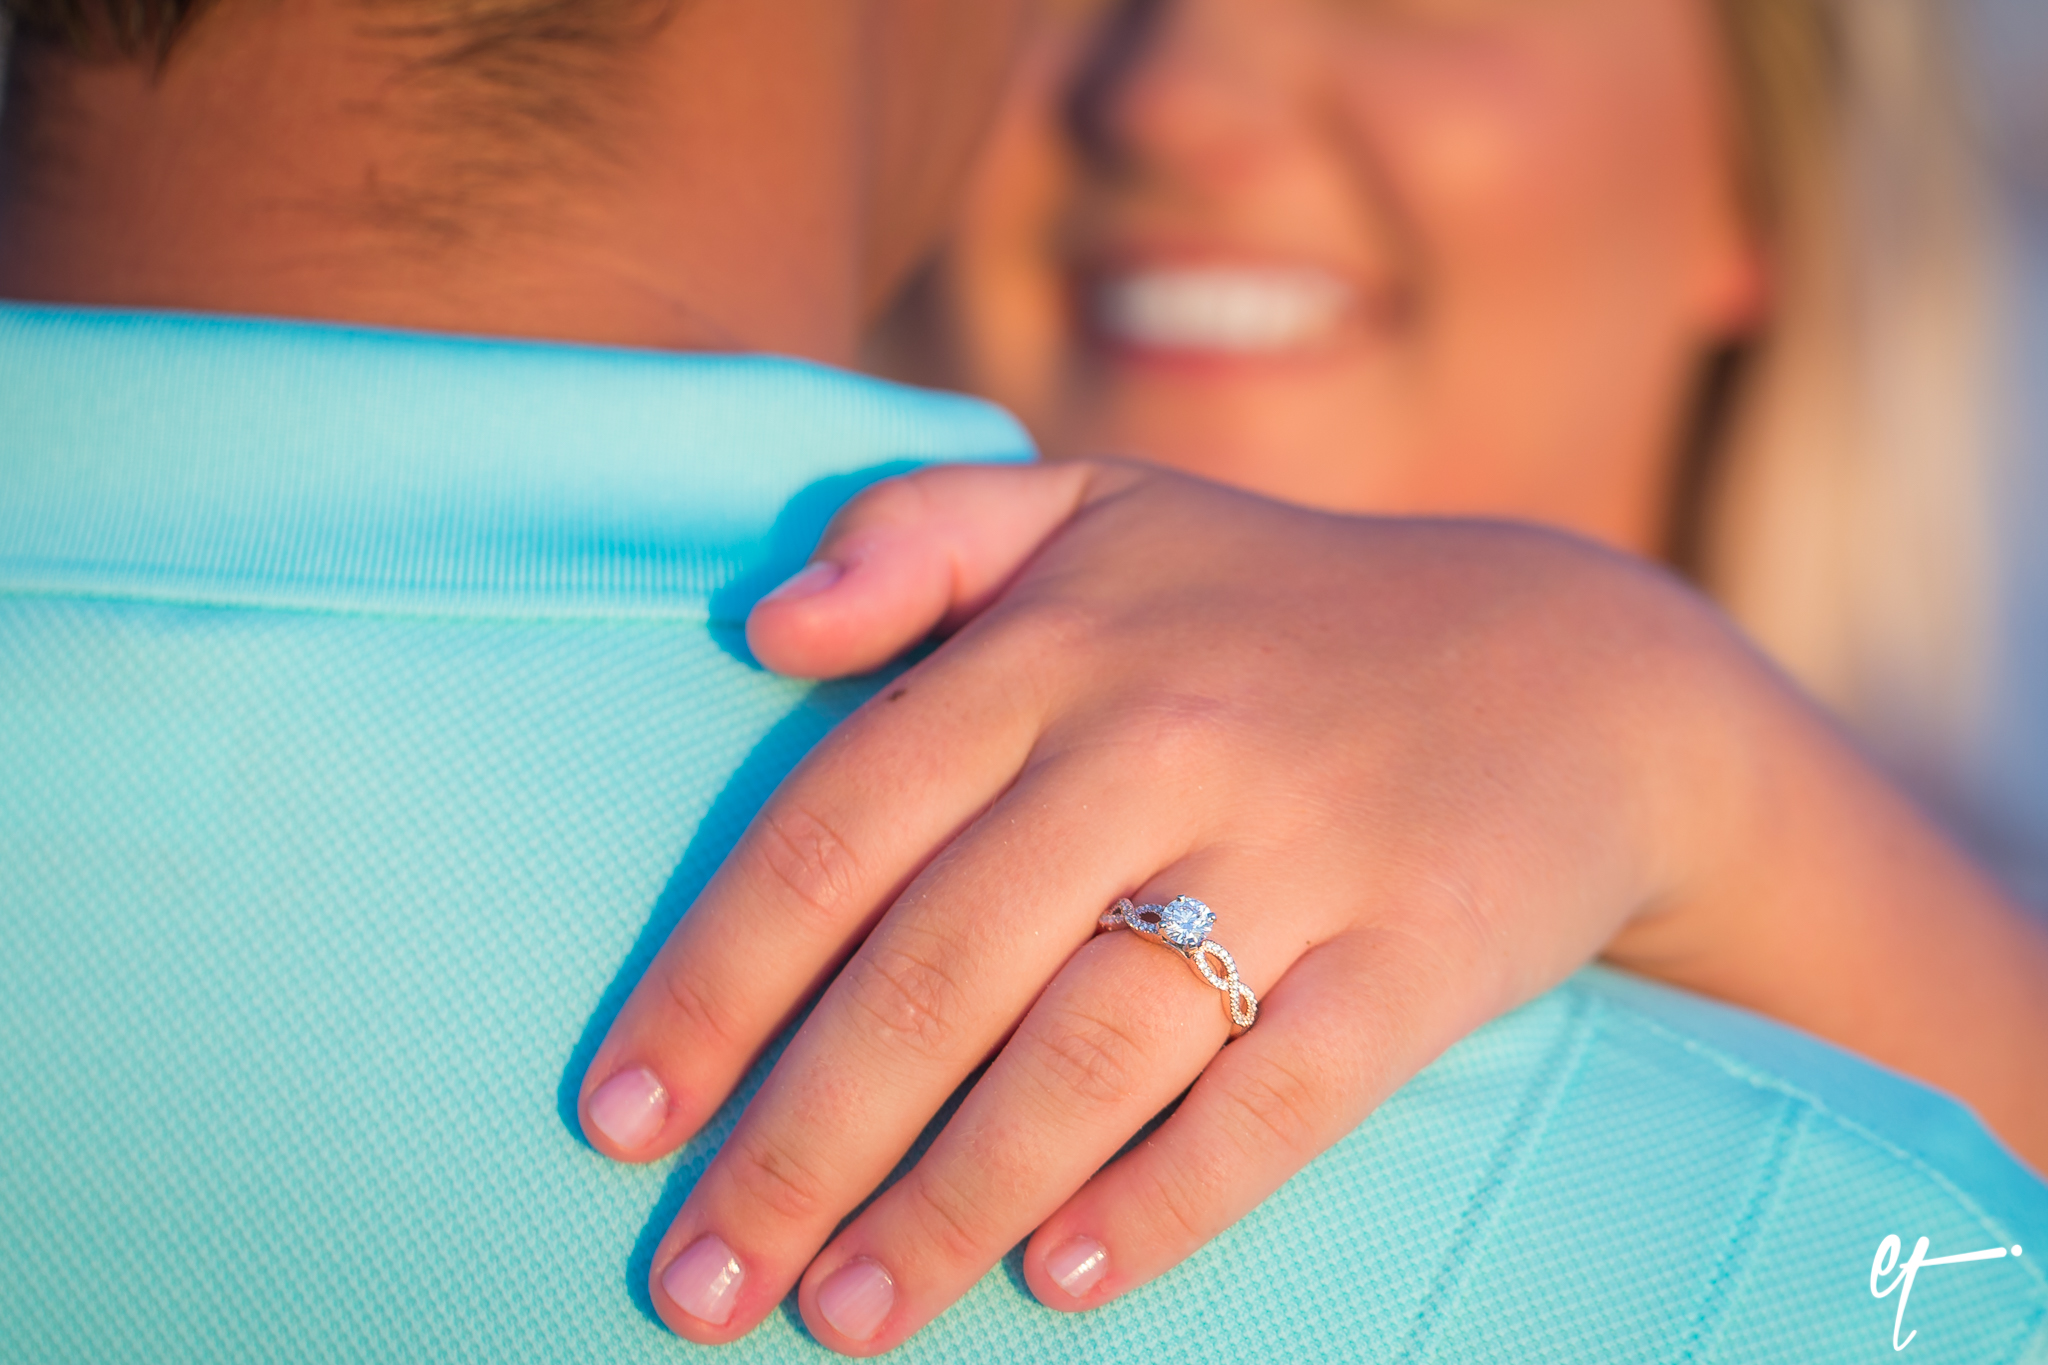 Surprise_Proposal_Sarasota_Lido_Key_Photography_Florida-29.jpg